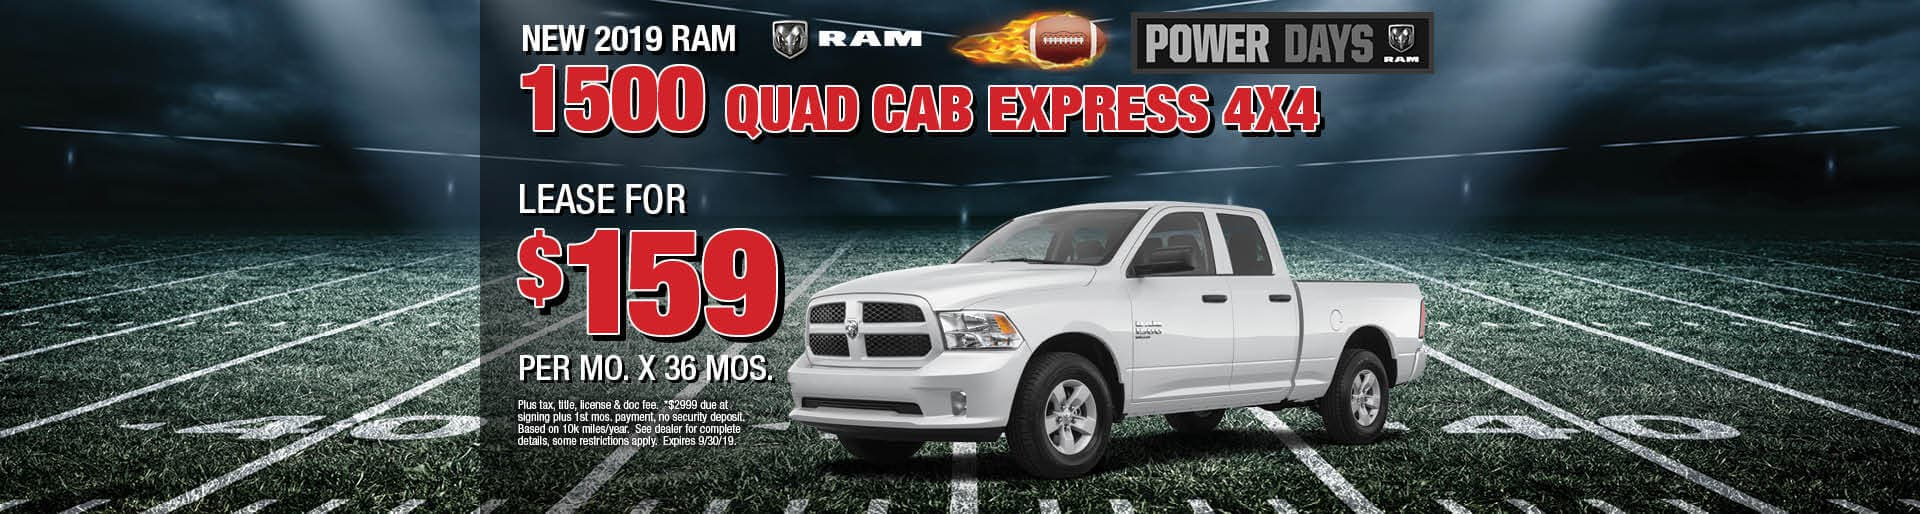 Lease a 2019 Ram 1500 Express for $159/mo. for 36 mos.